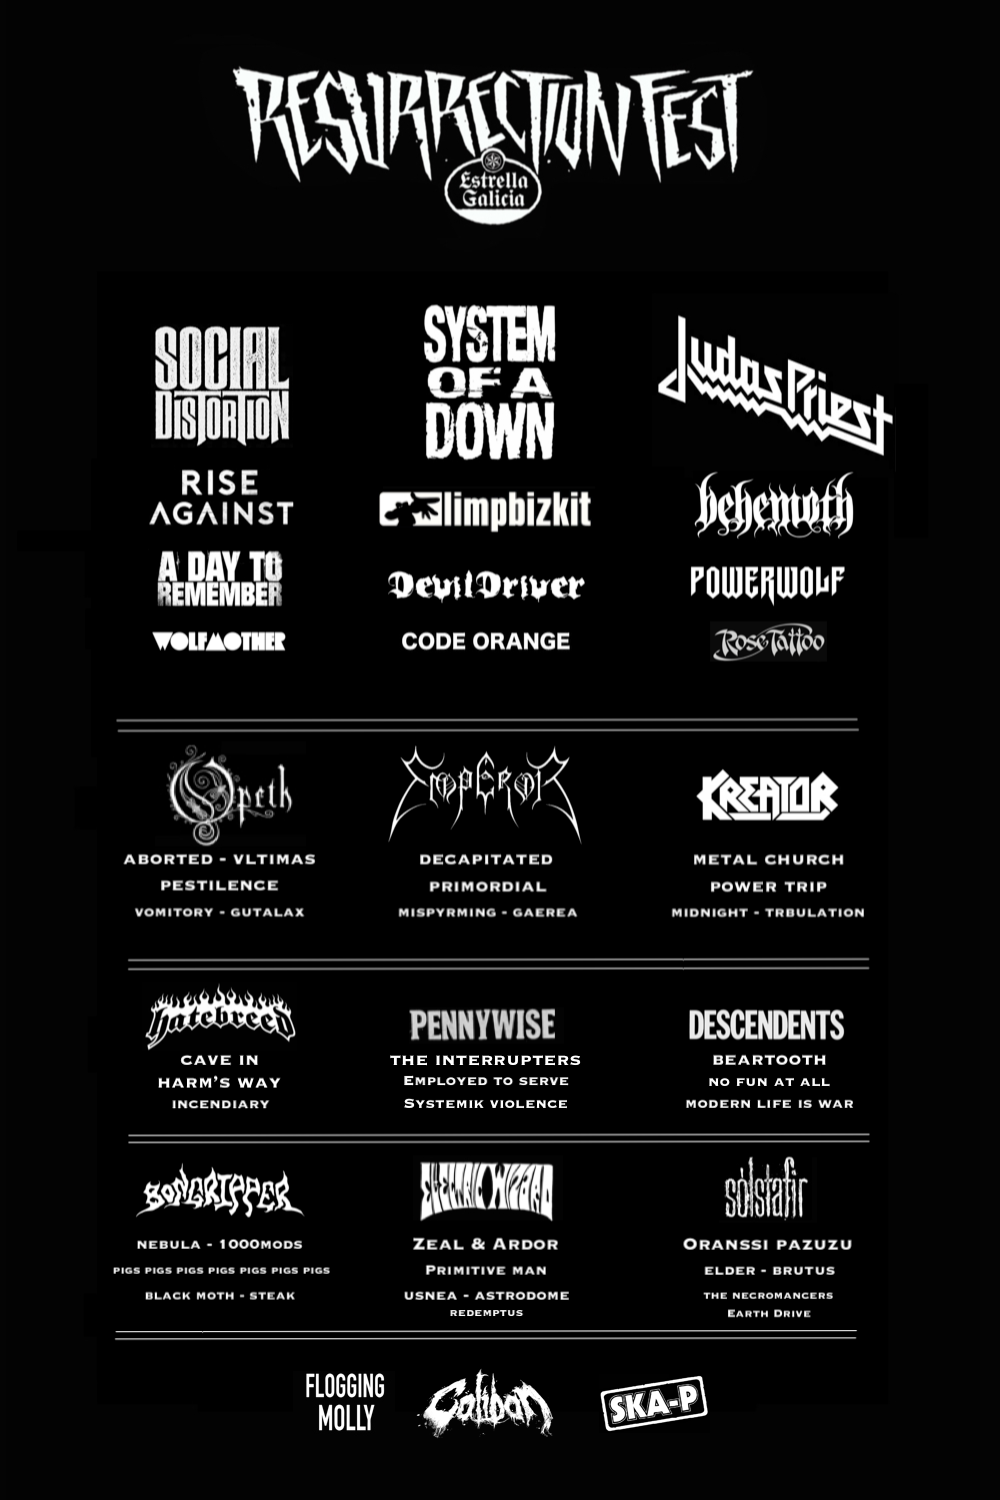 RESURRECTION FEST 2020 (1-4 / 7 /20) - Página 2 Cartel11-c-pia